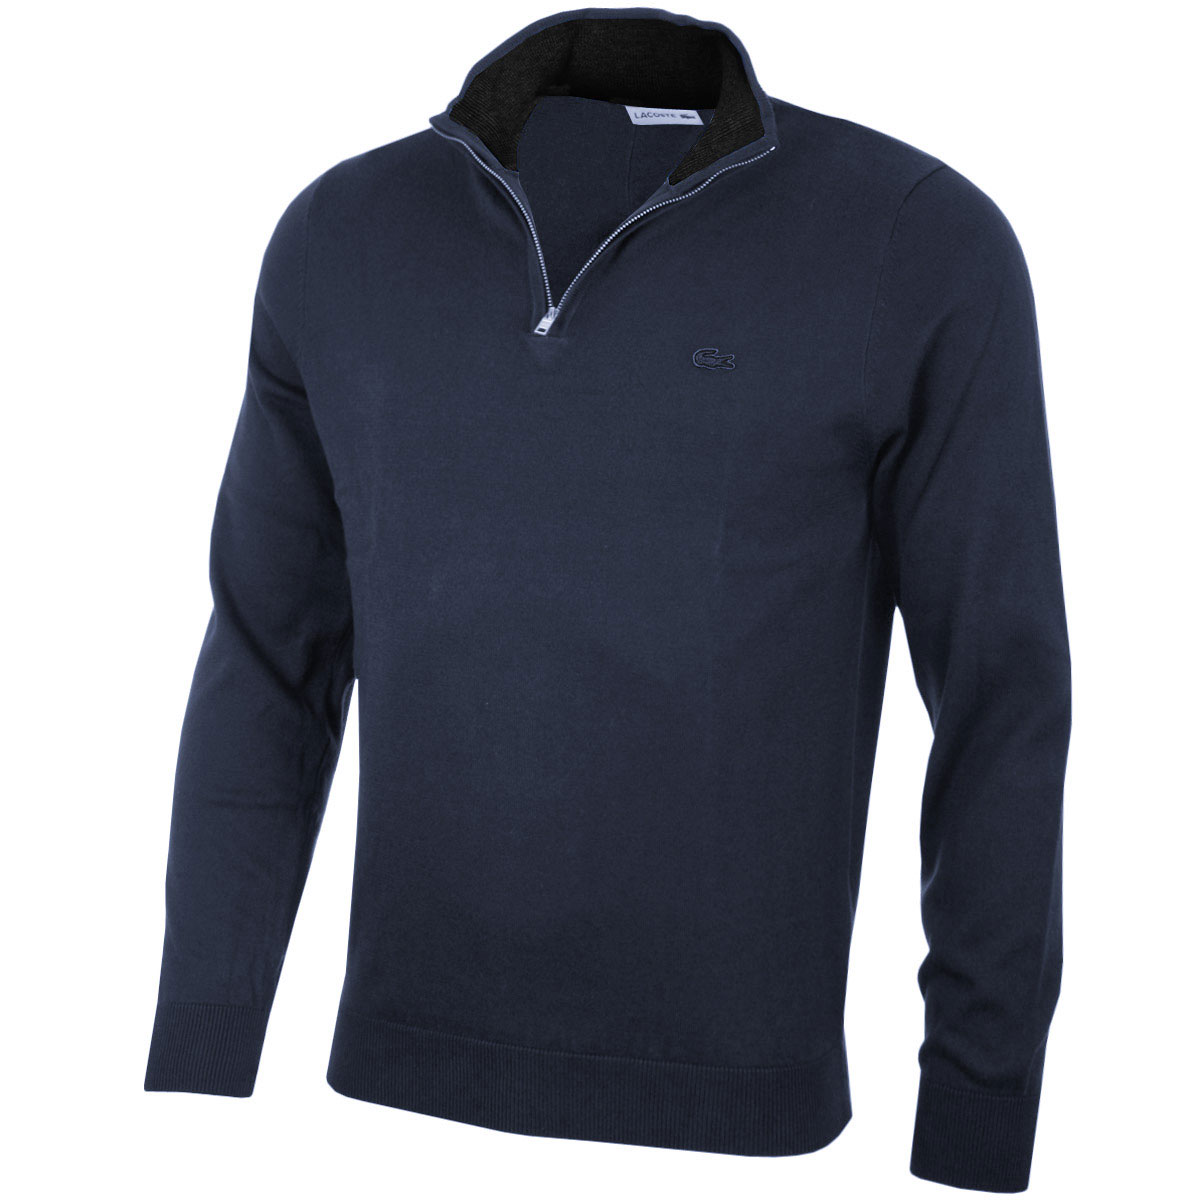 Find mens high neck jumper at ShopStyle. Shop the latest collection of mens high neck jumper from the most popular stores - all in one place.